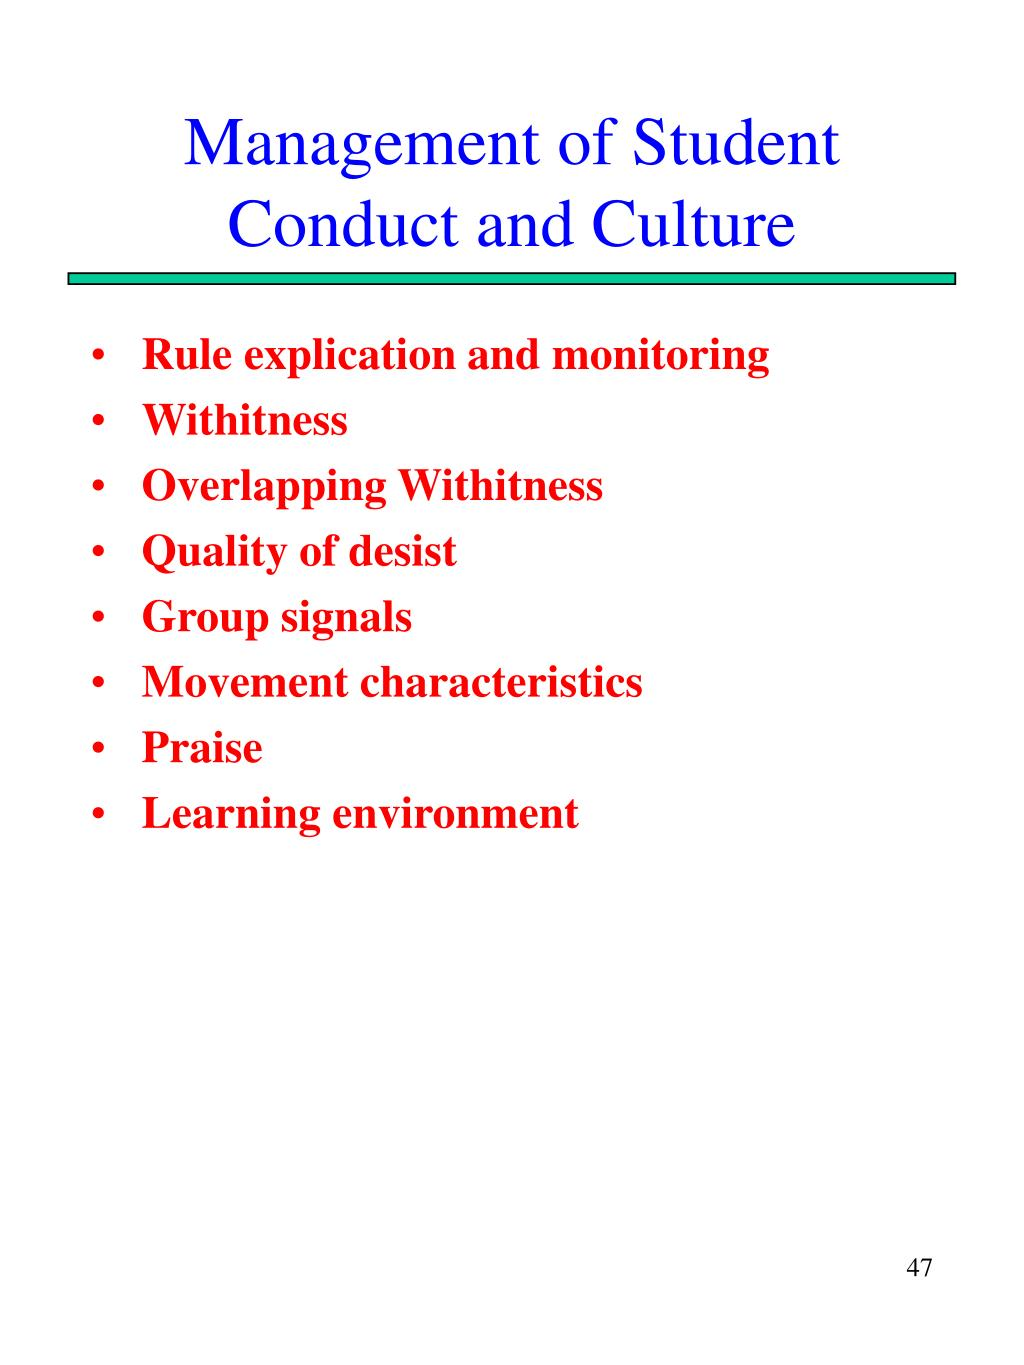 Management of Student Conduct and Culture